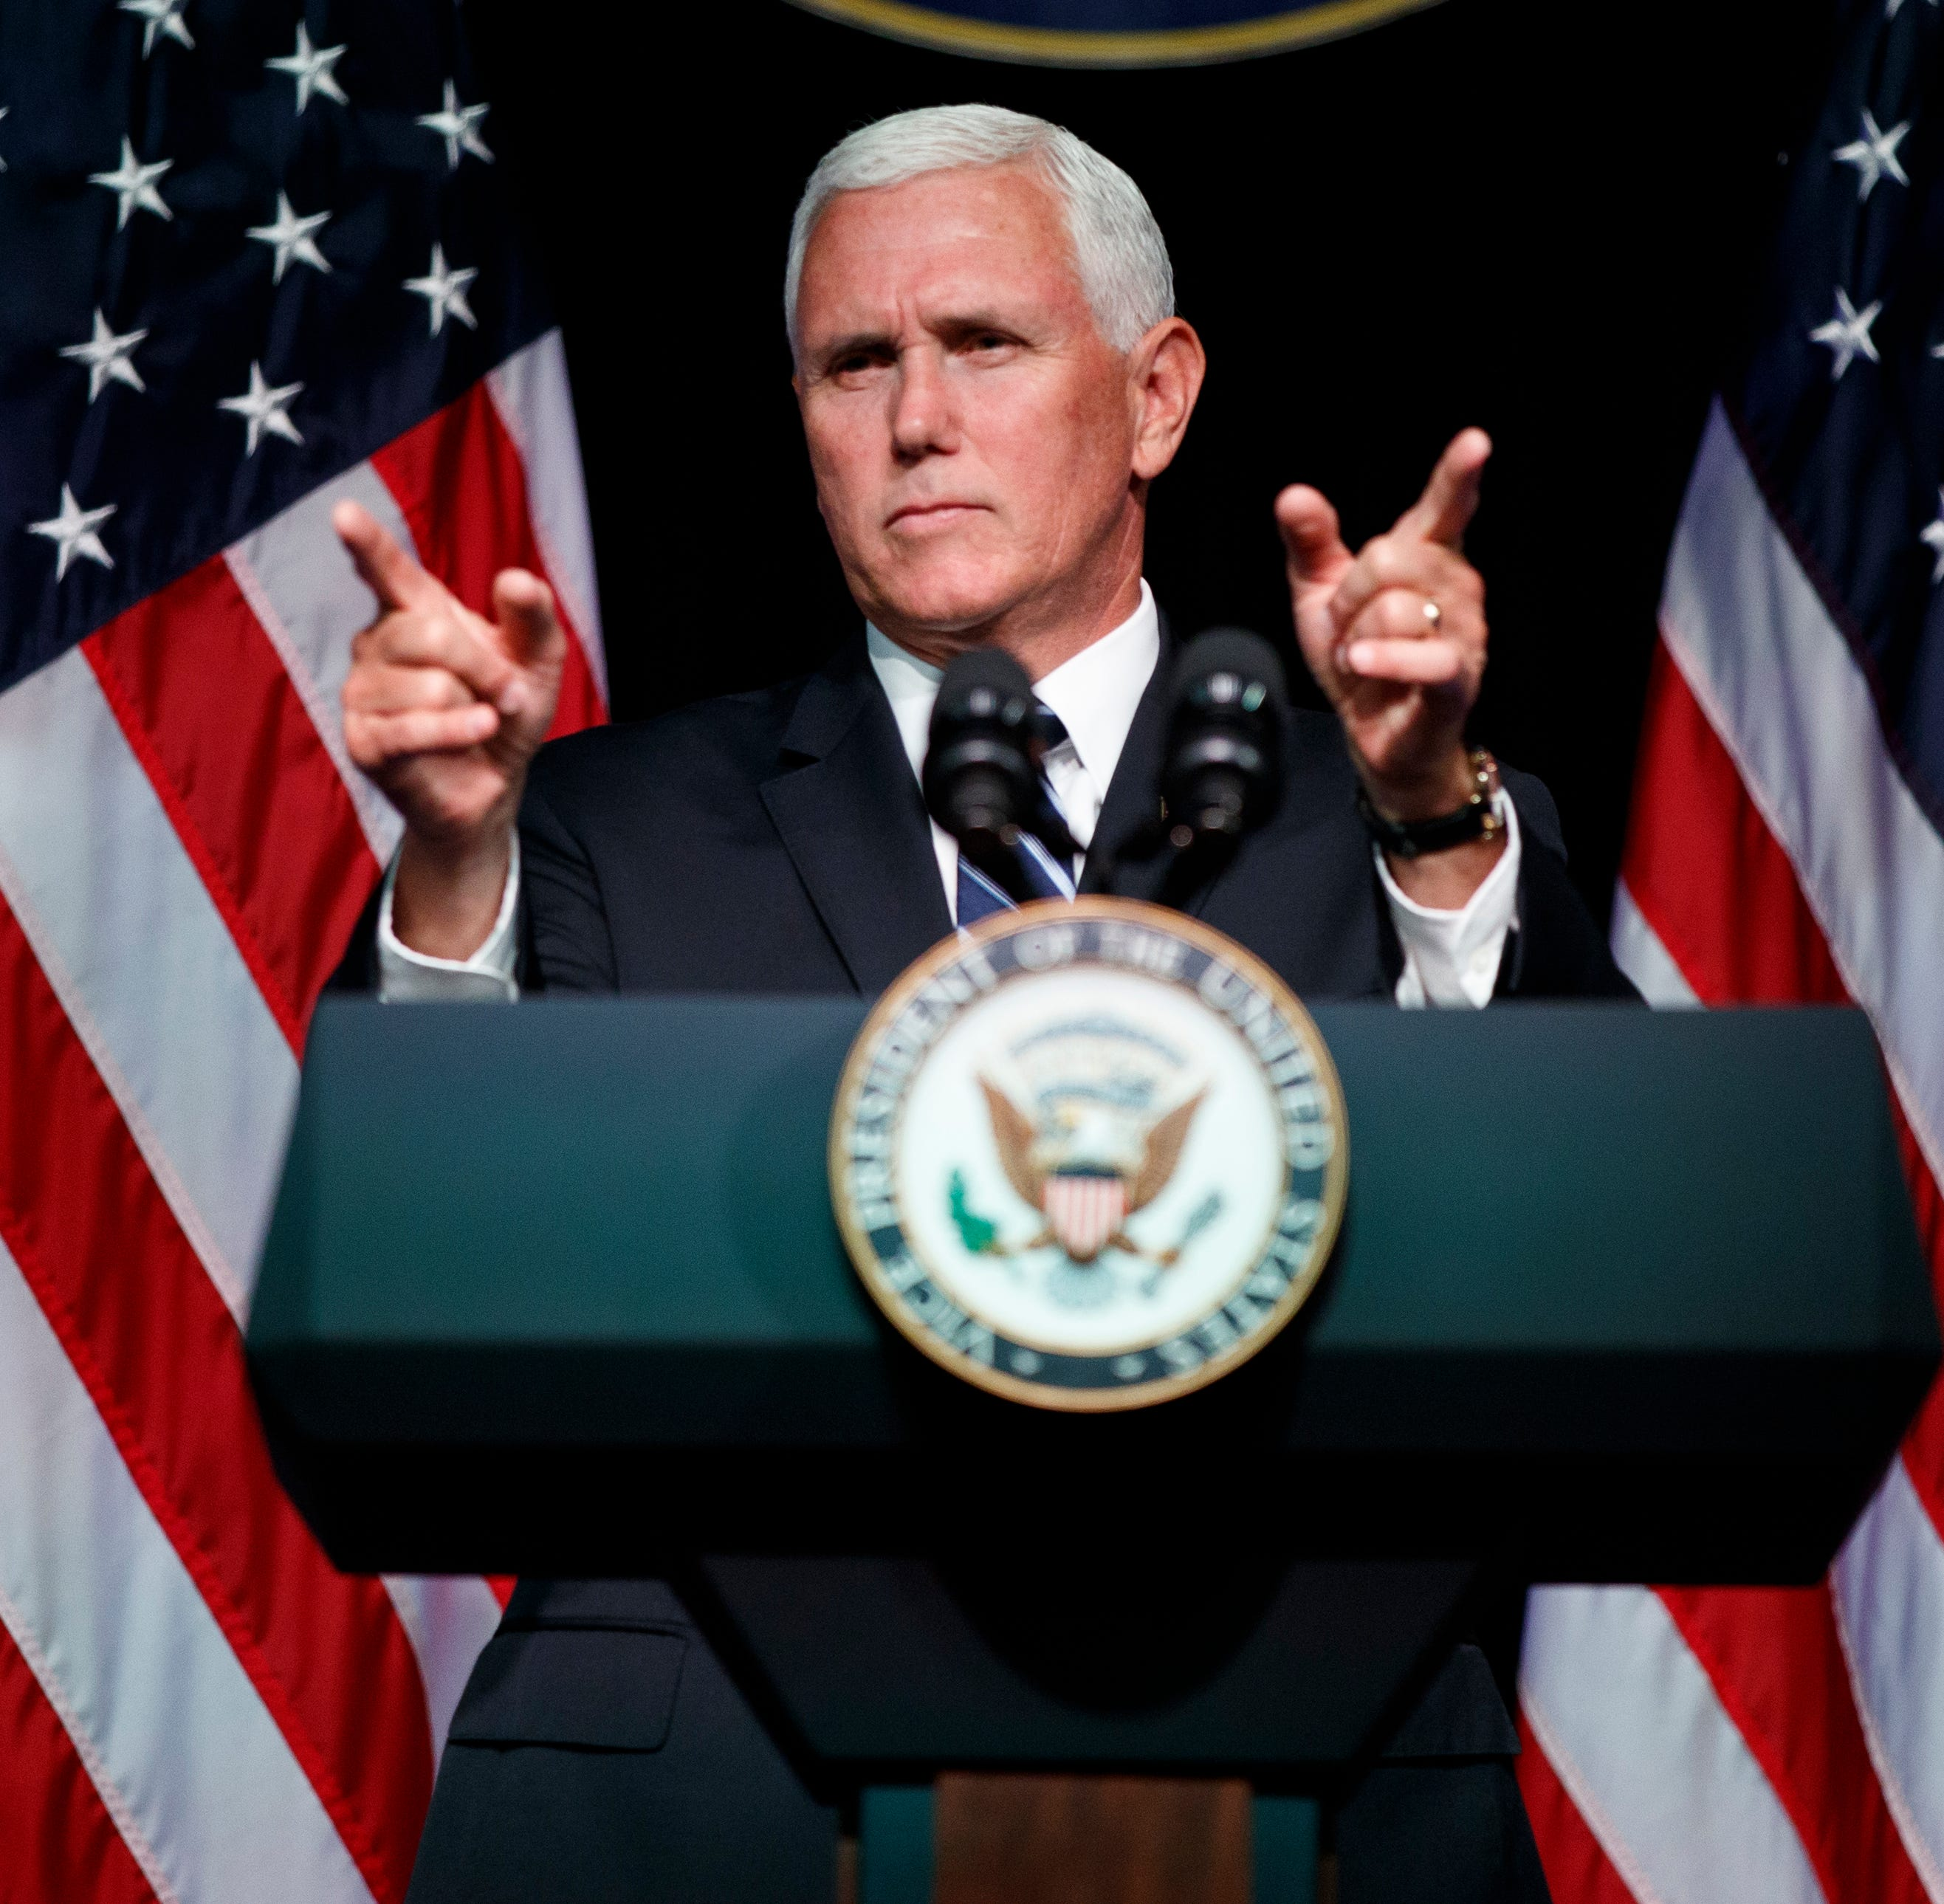 Vice President Mike Pence to visit Ave Maria University